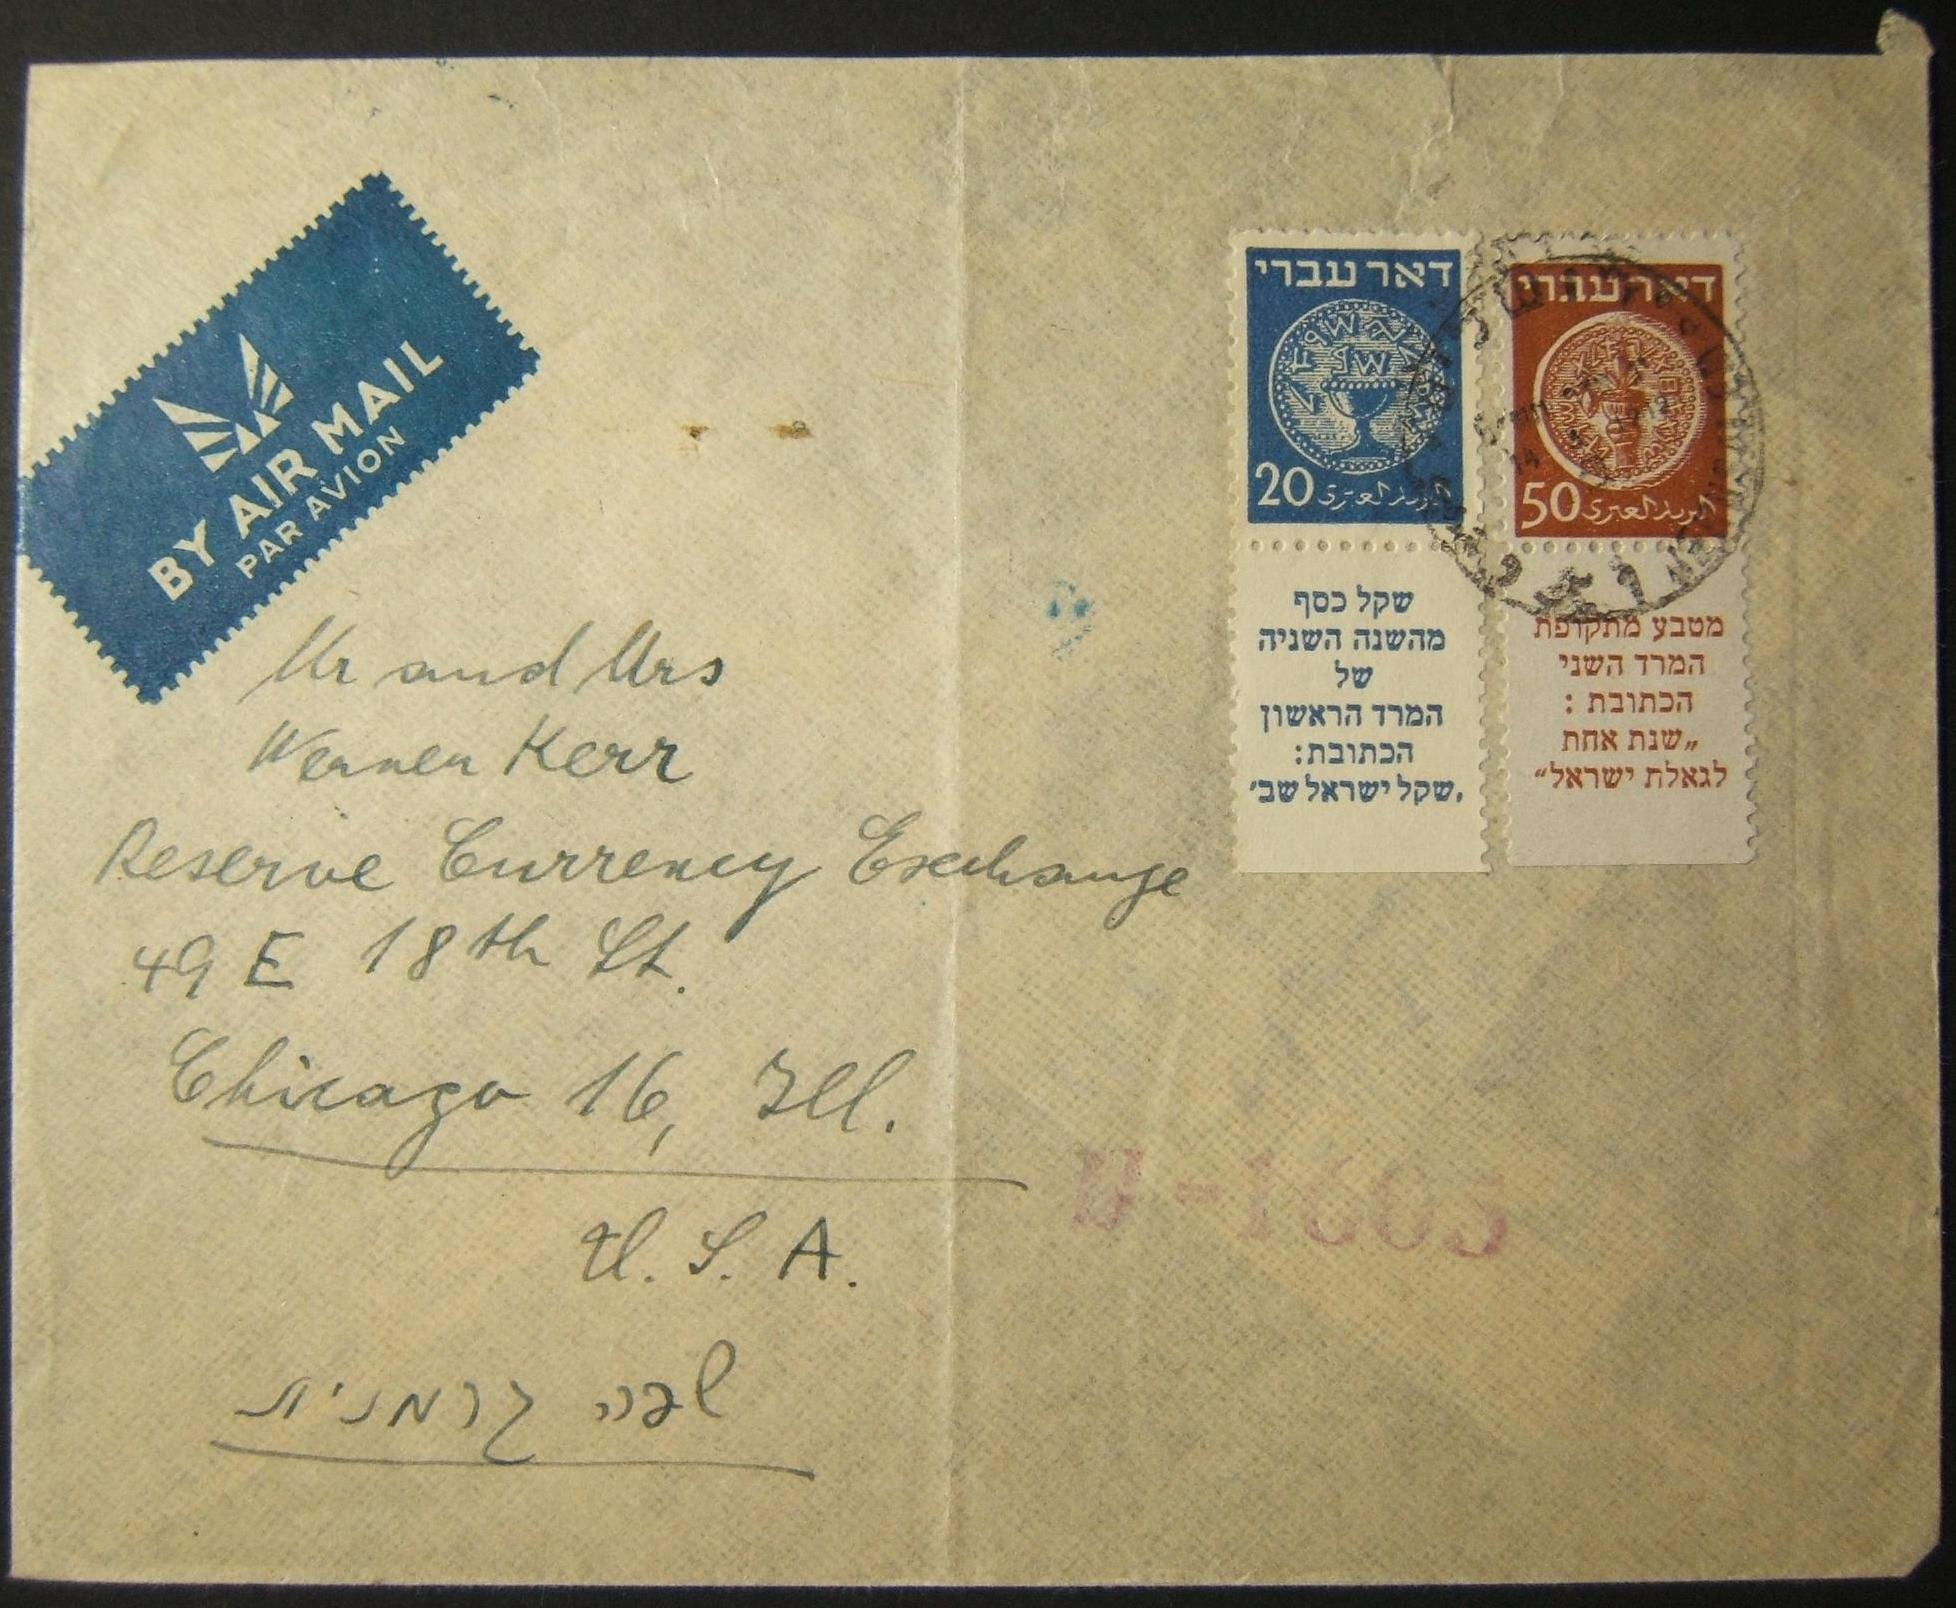 3/1949 airmail to US with tabbed 50Pr gray paper & tabbed 20Pr Doar Ivri stamps